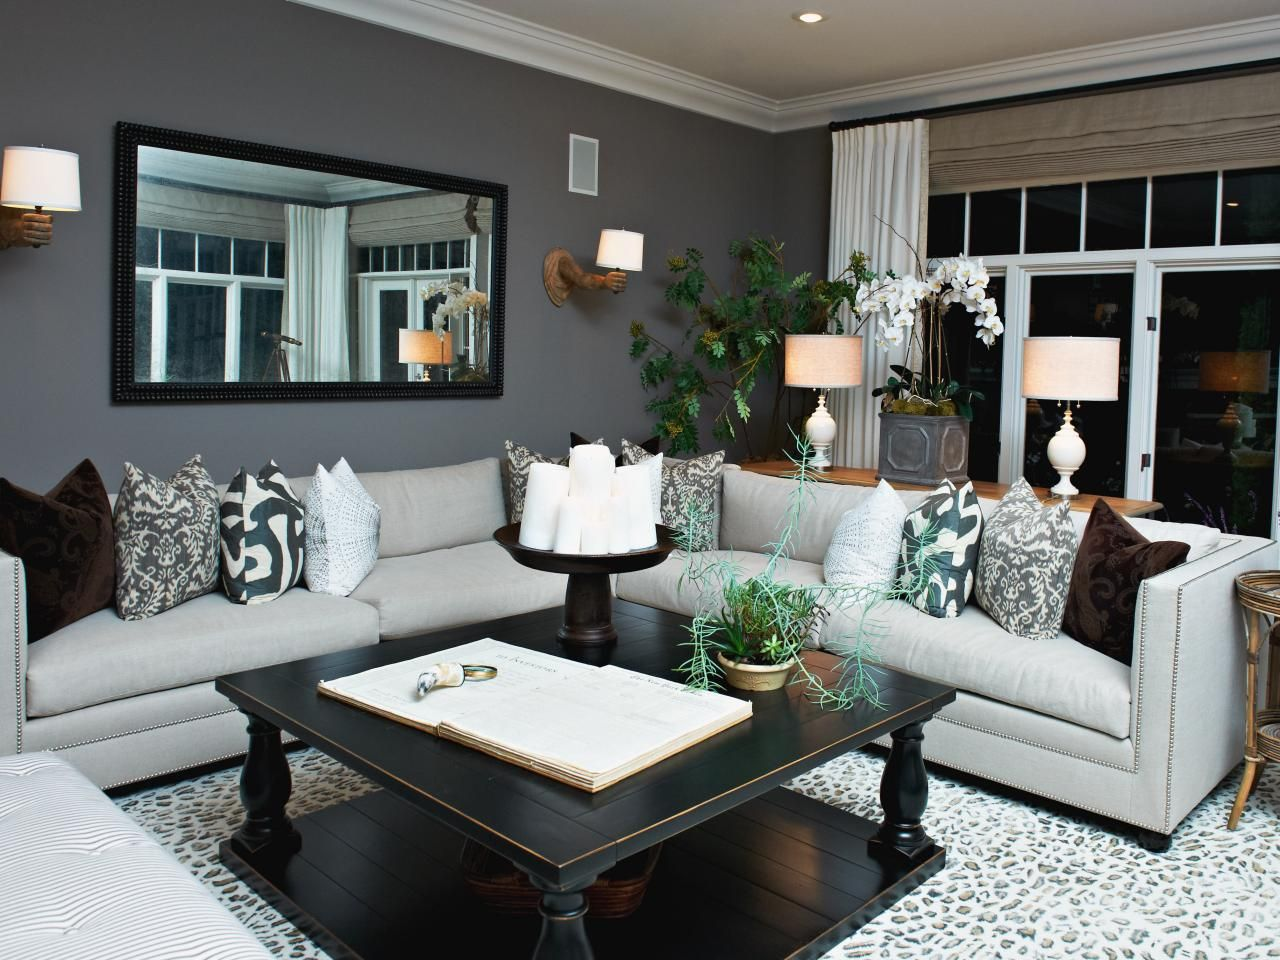 Hgtv Design Ideas Living Room decorating your hgtv home design with amazing awesome small living room interior design ideas and make Top 50 Pinterest Gallery 2014 Gray Living Roomscontemporary Living Roomsliving Room Ideastransitional